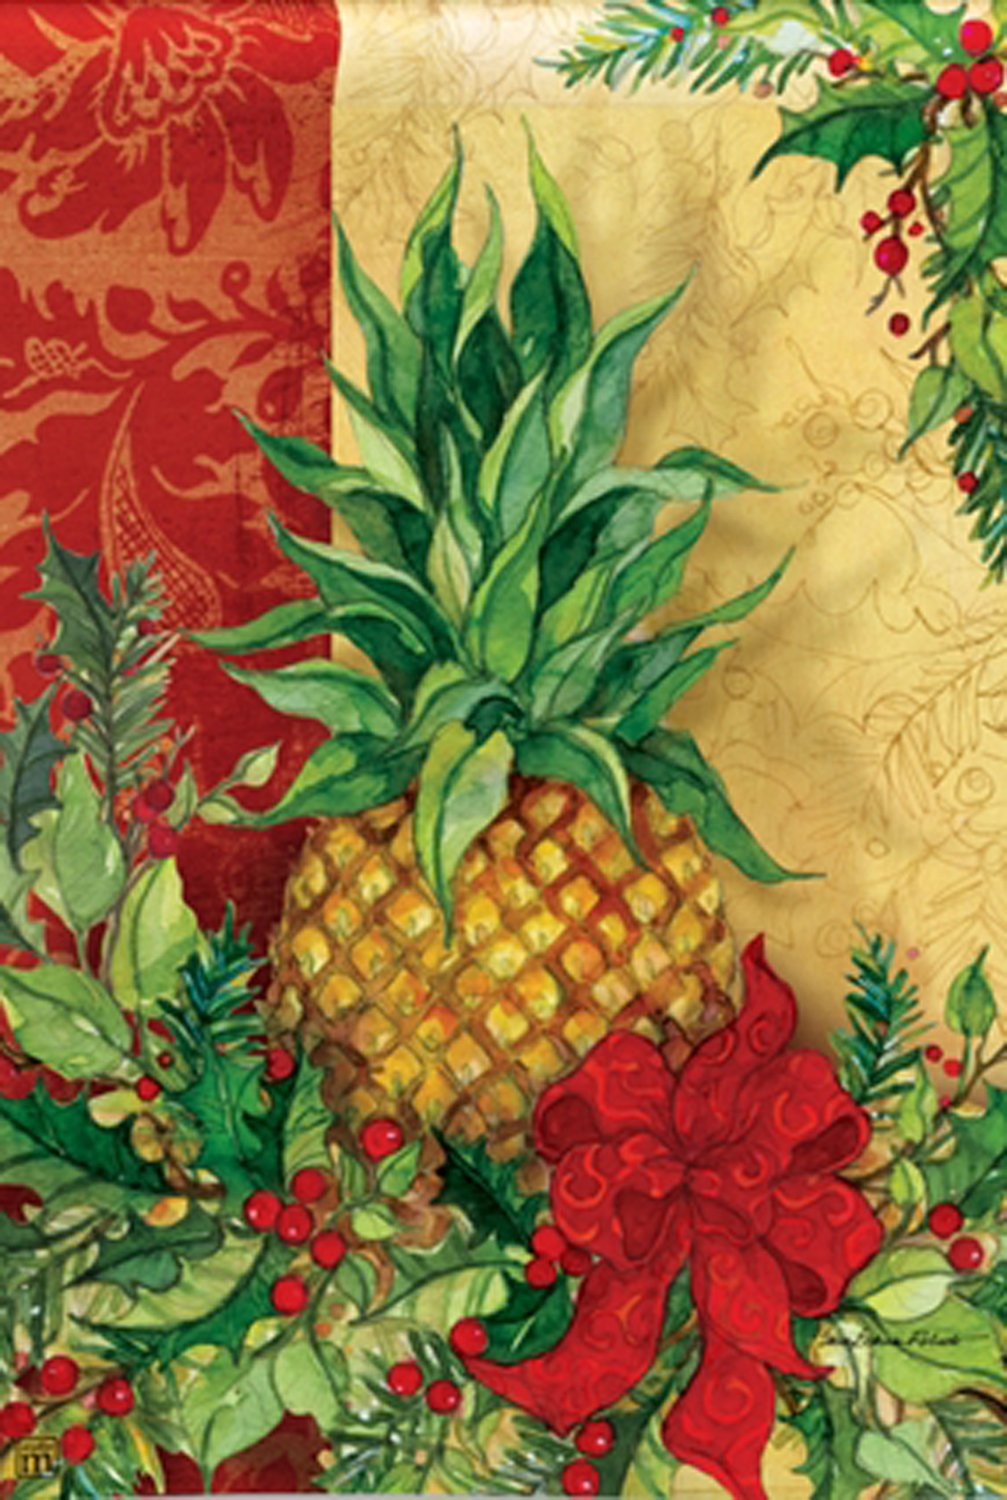 Christmas Pineapple.Christmas Pineapple House Flag Red Berries Holly Holiday Decorative 28 X 40